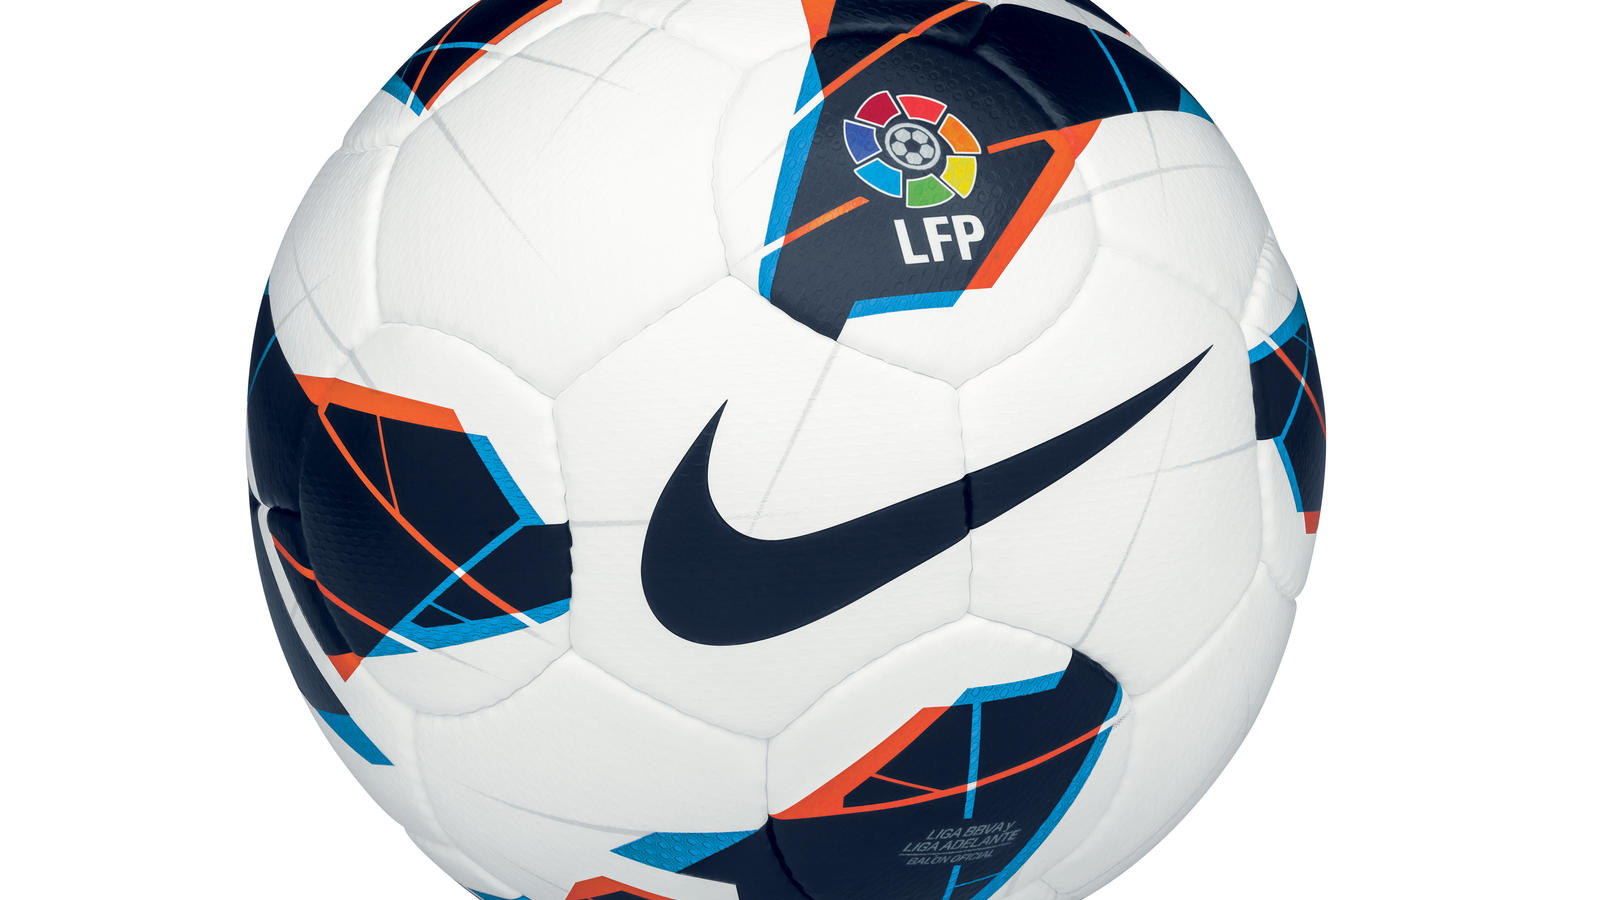 6628361f7 Nike_LaLiga_Football. Nike_Maxim_FootBall_Euro_Leagues.  Nike_LaLiga_Football. Nike_Maxim_FootBall_Euro_Leagues